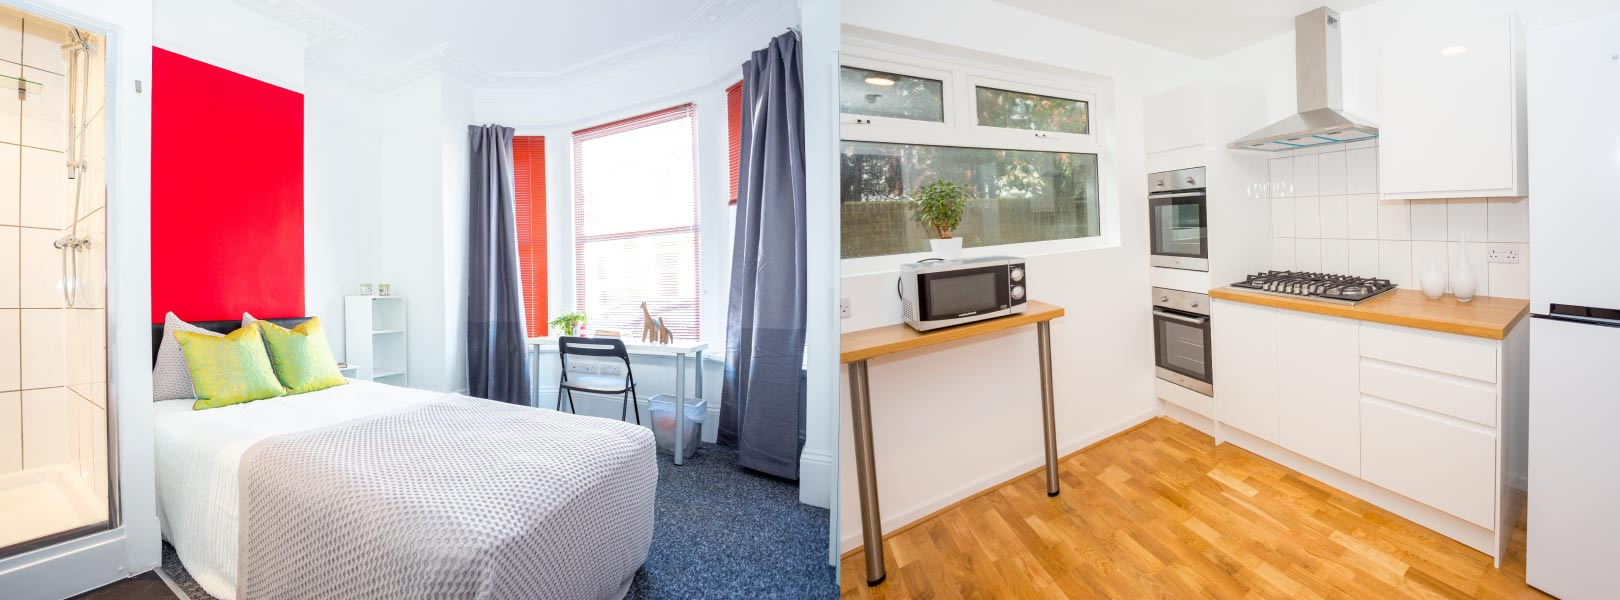 Fuse Properties quality student rental accommodation in Portsmouth